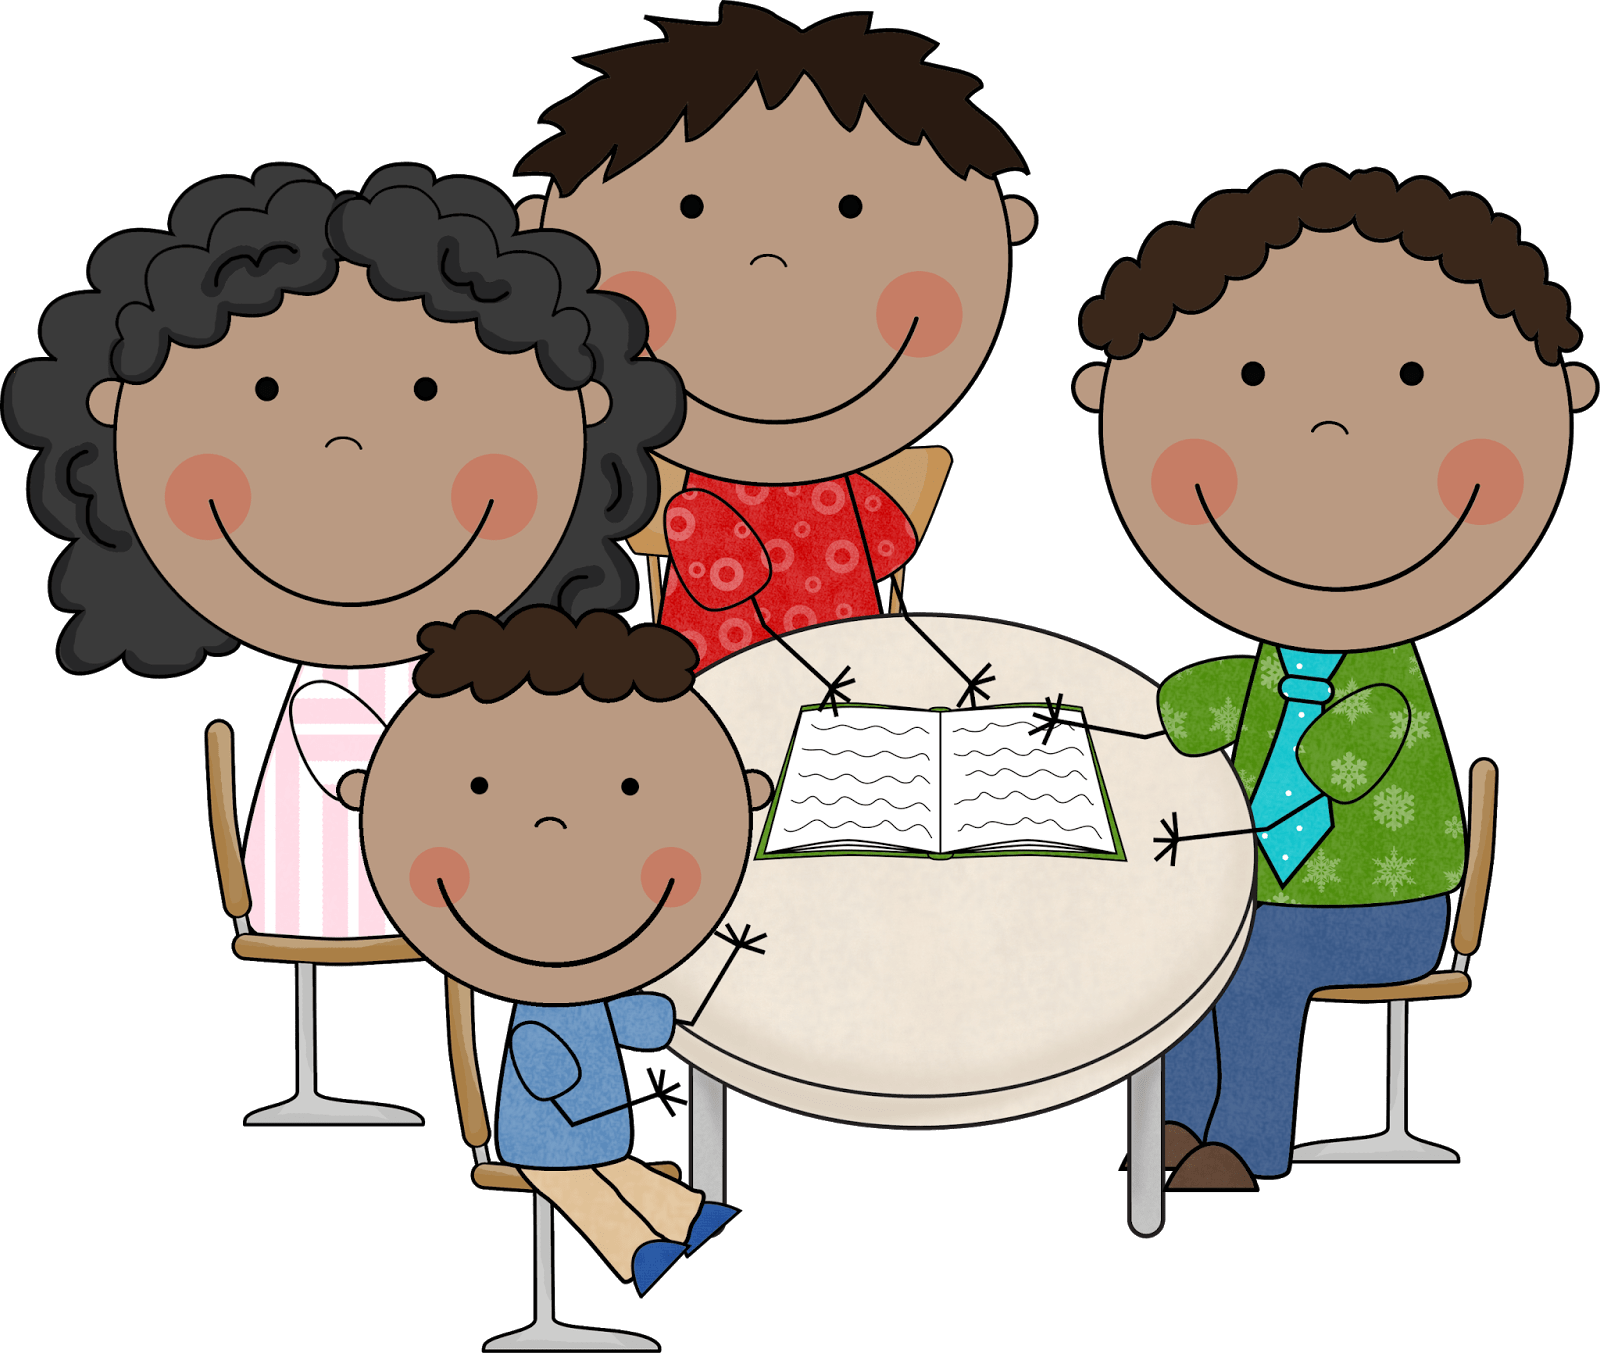 primary conferences and half day monday stockholm international school rh sis intsch se parent teacher conference clipart black and white And Clip Teacher Black Conference Art White Parent